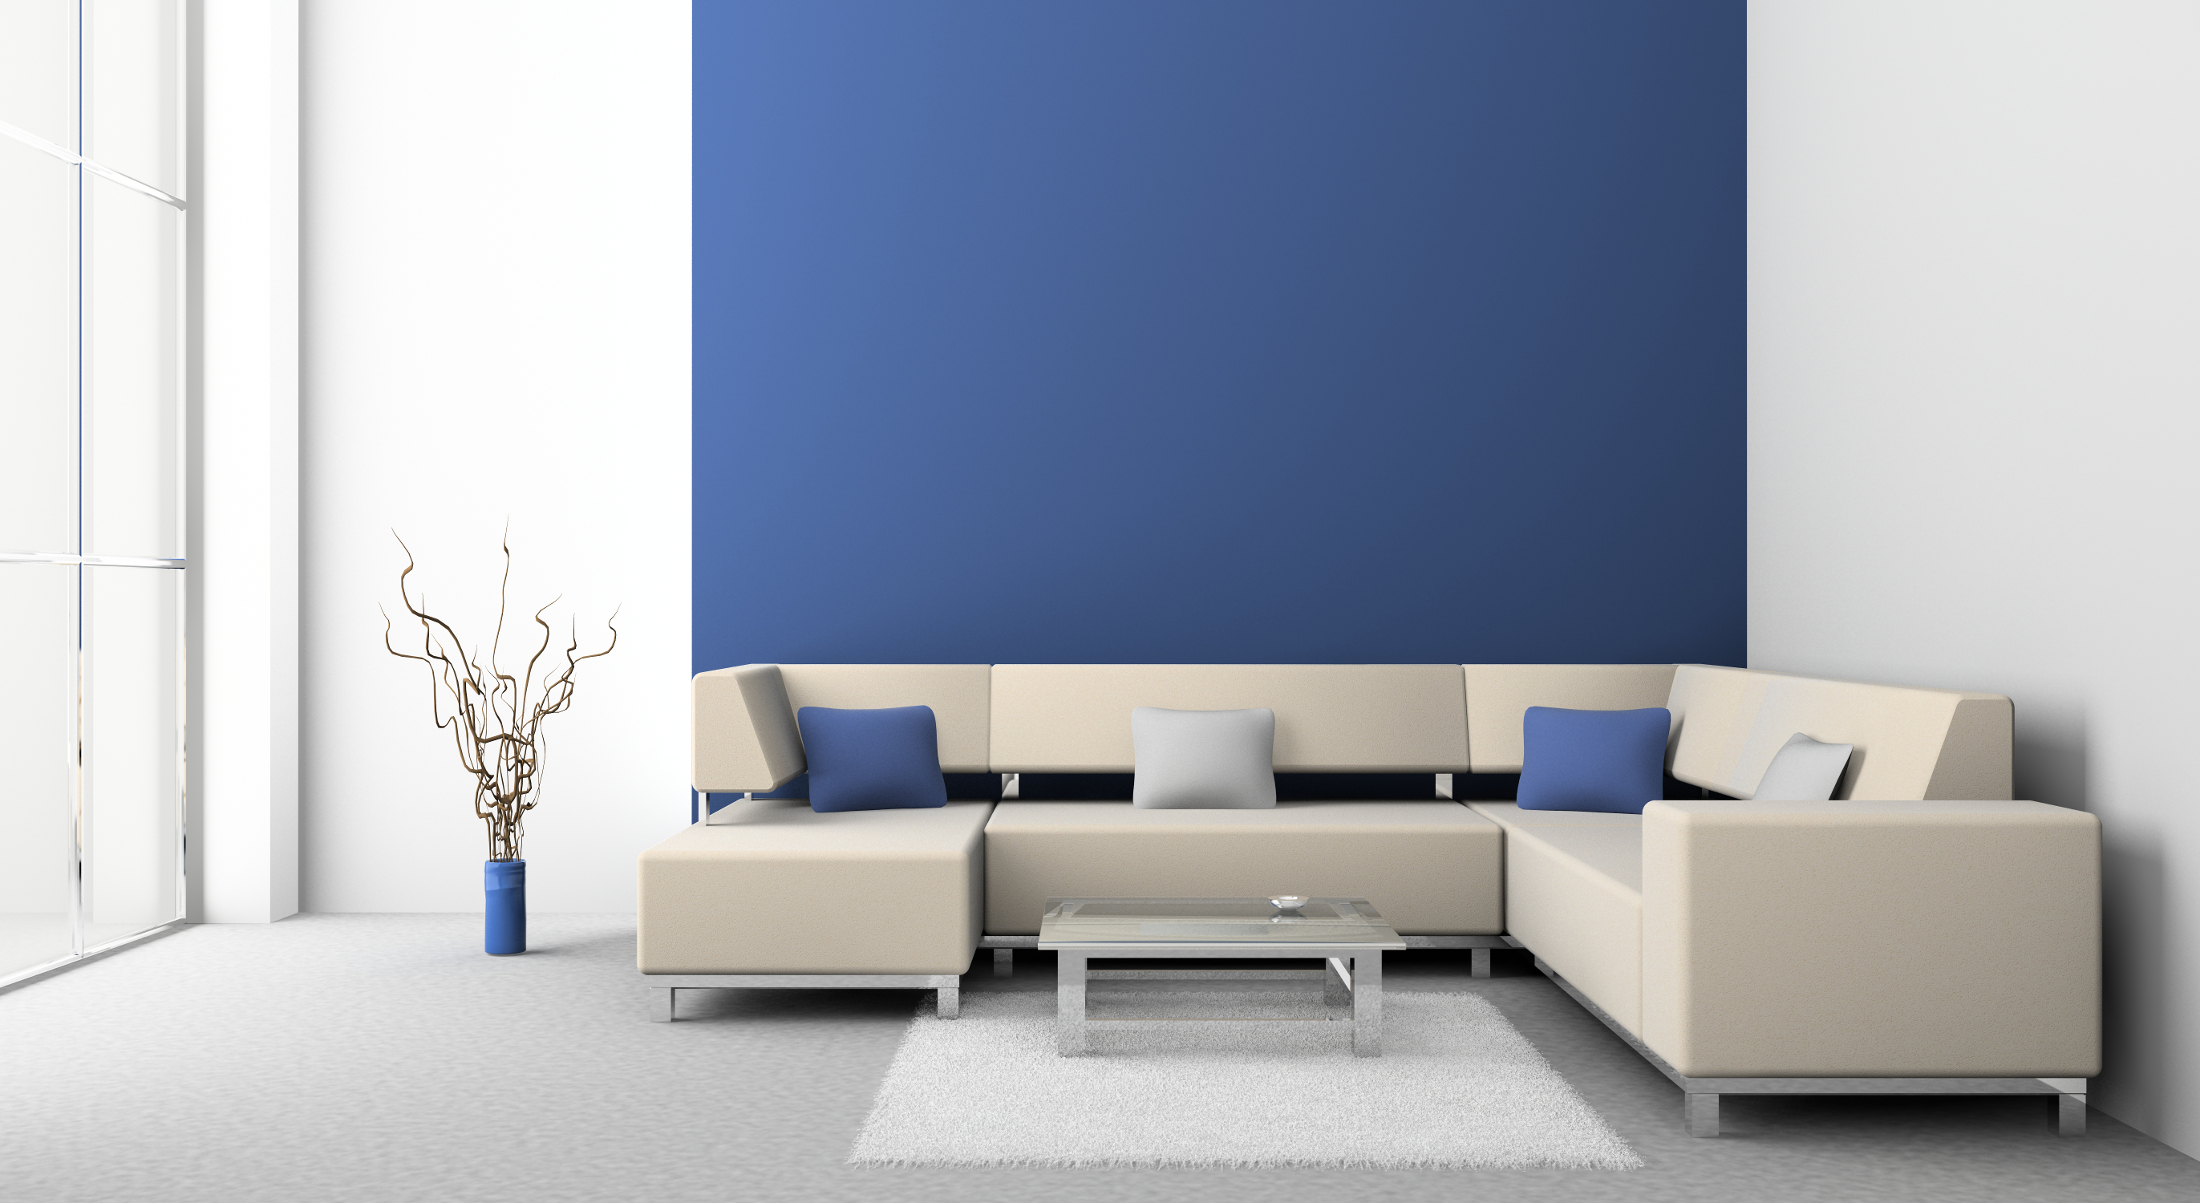 White Wall with Blue Area and Tan Sofa